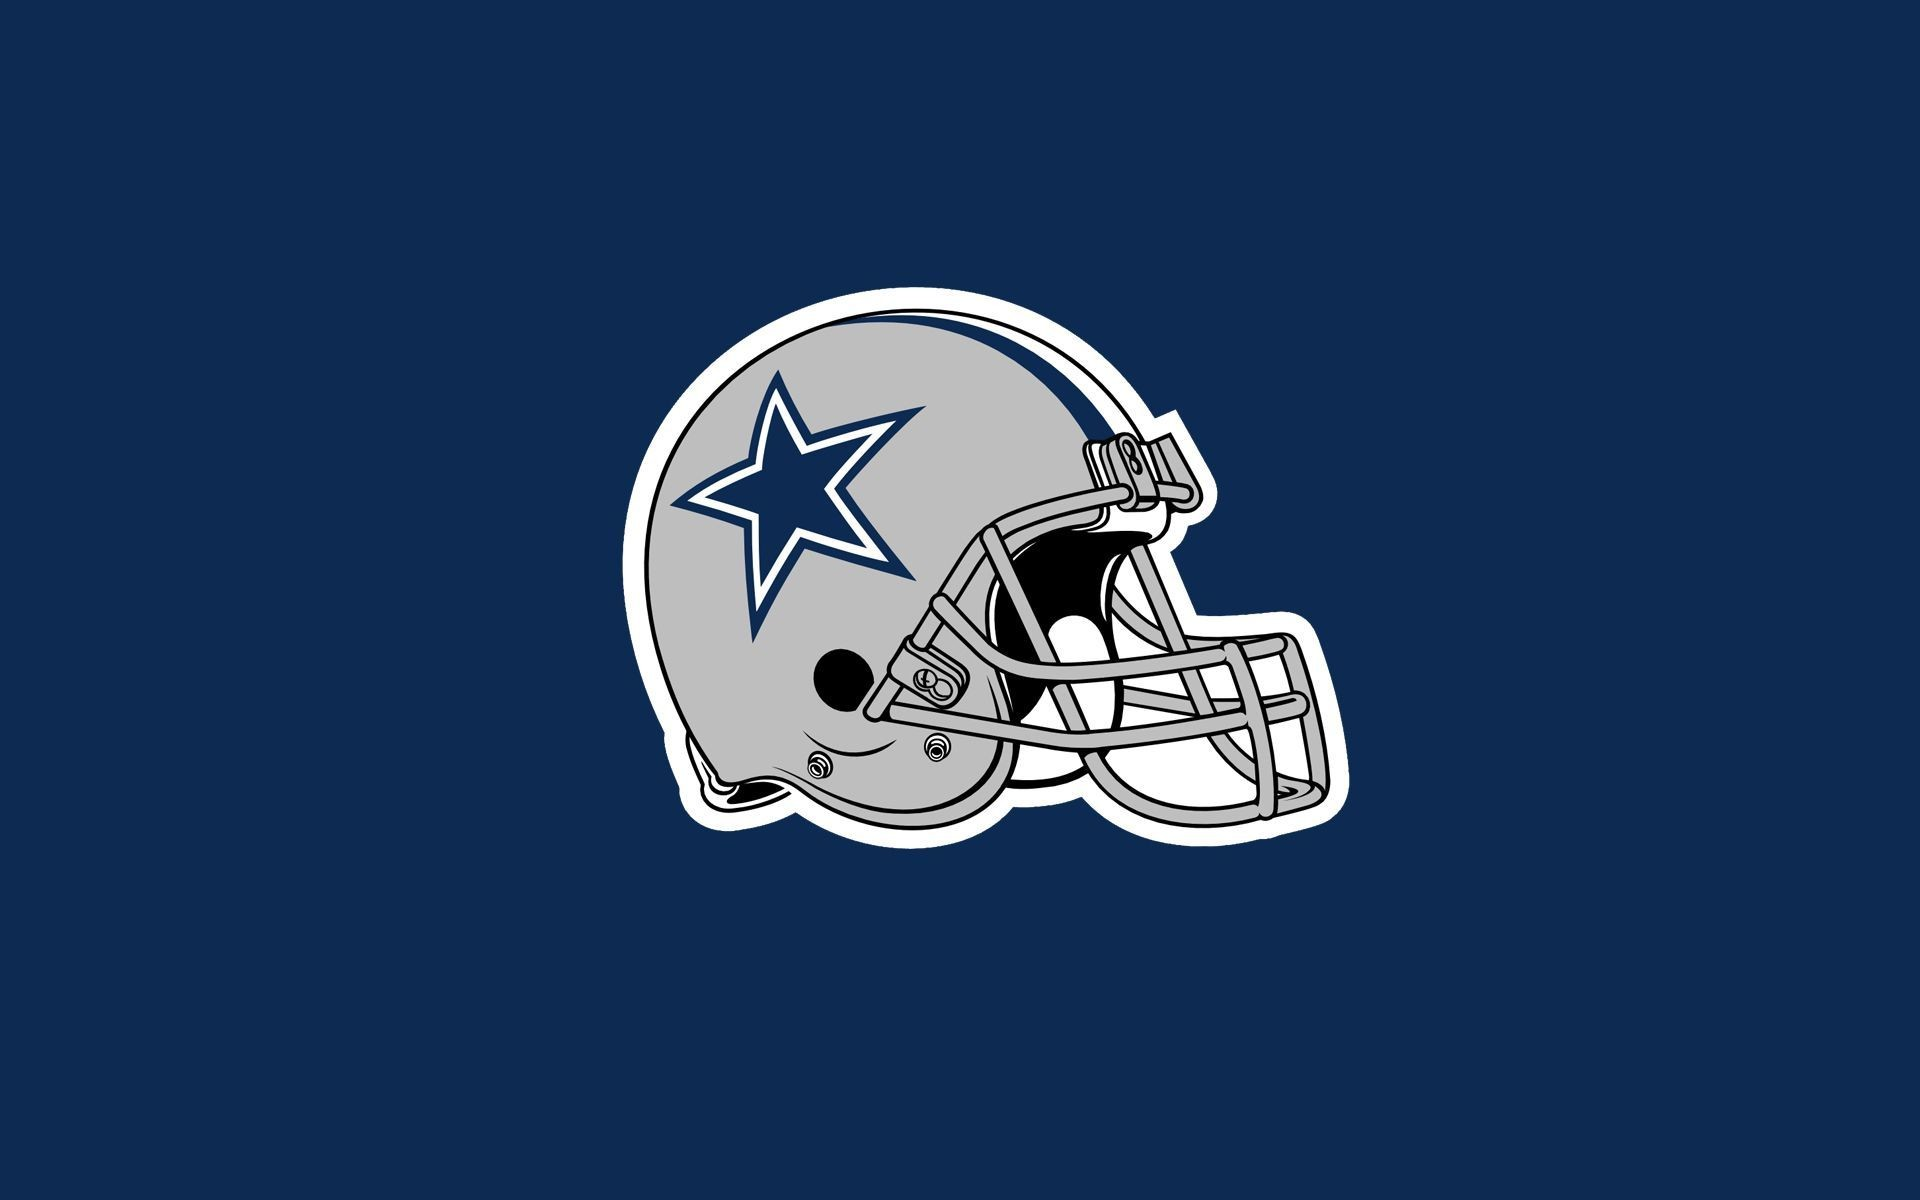 Dallas Cowboys Wallpaper for iPhone 72 images 1920x1200